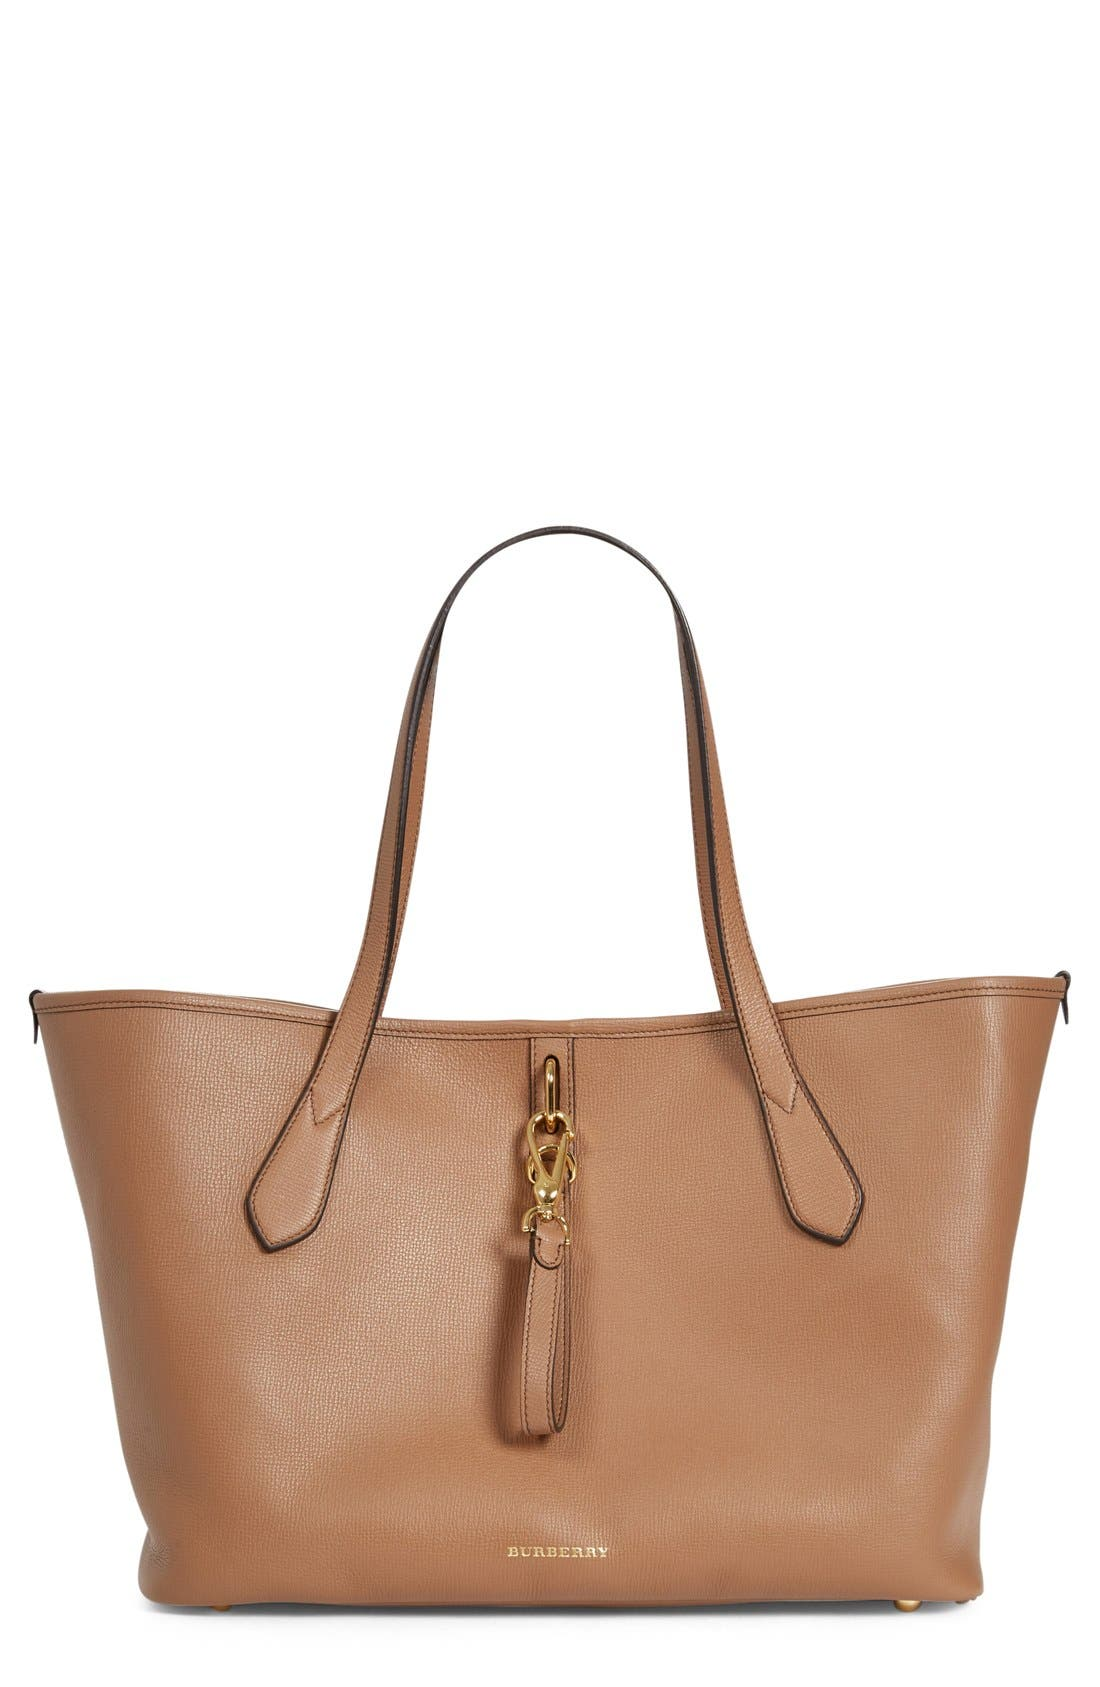 Alternate Image 1 Selected - Burberry 'Medium Honeybrook' Leather Tote